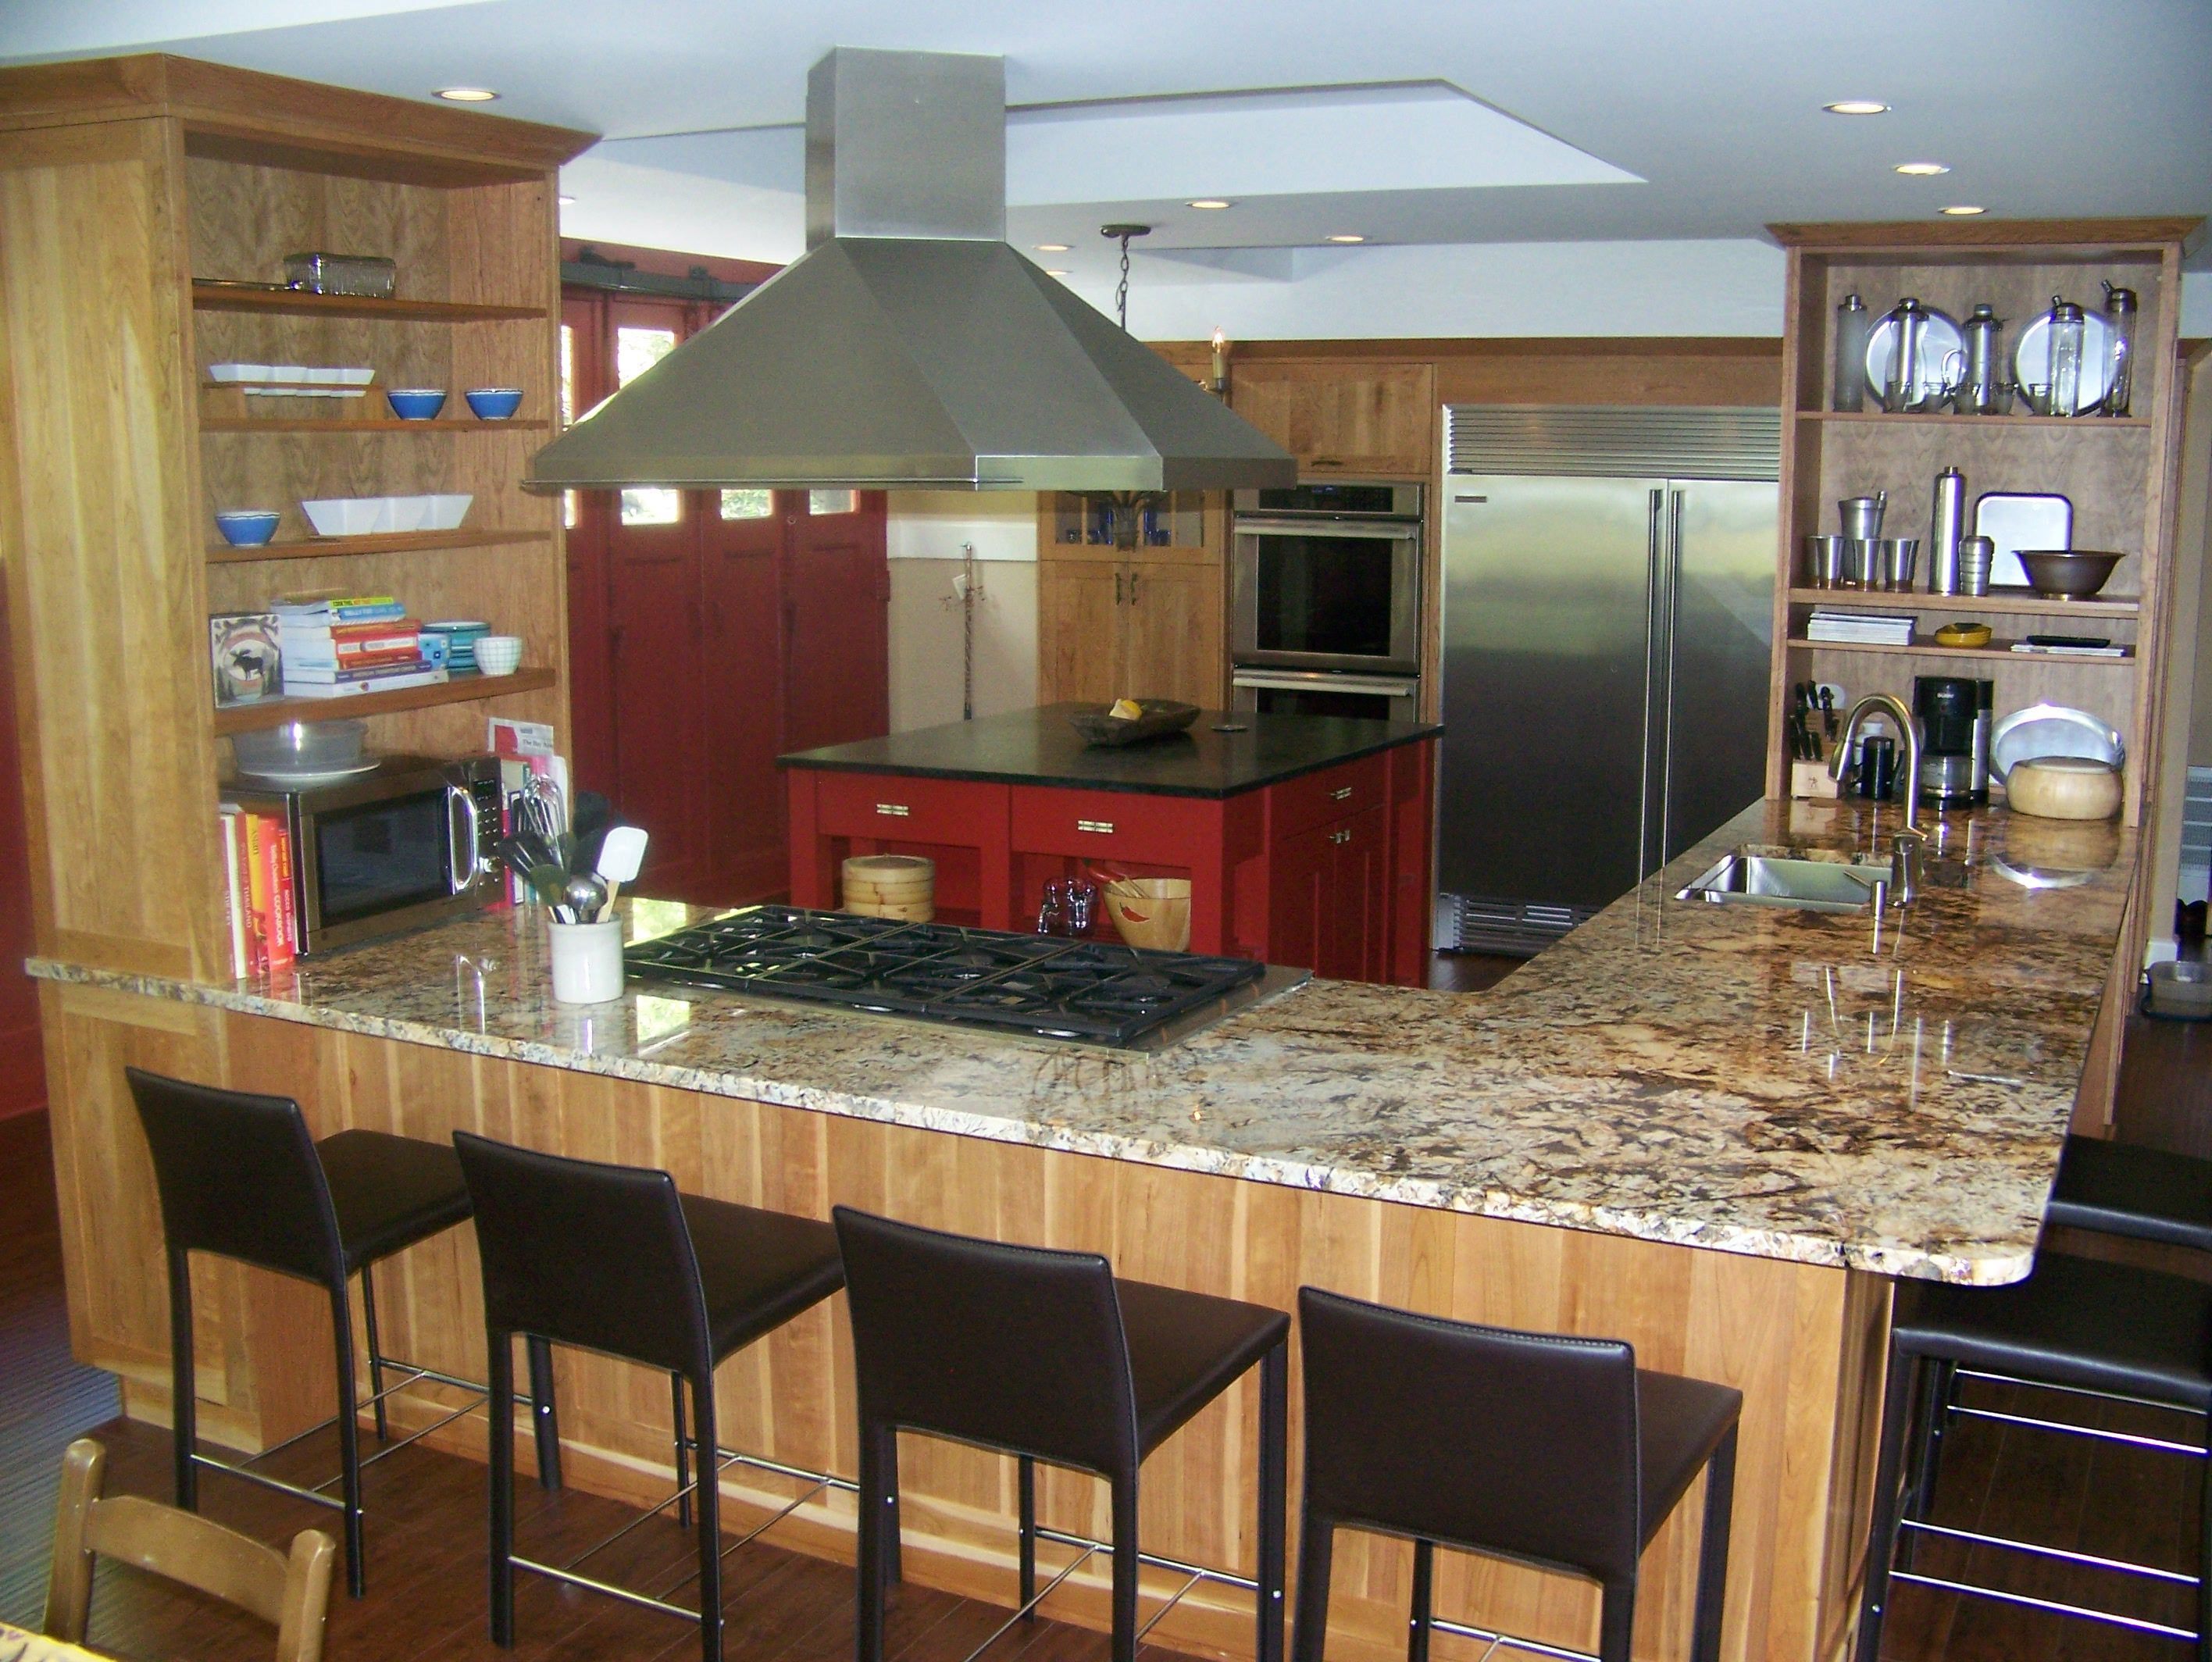 v shaped kitchen islands designs photos deluxe home design con imágenes house diy on kitchen island ideas v shape id=16048